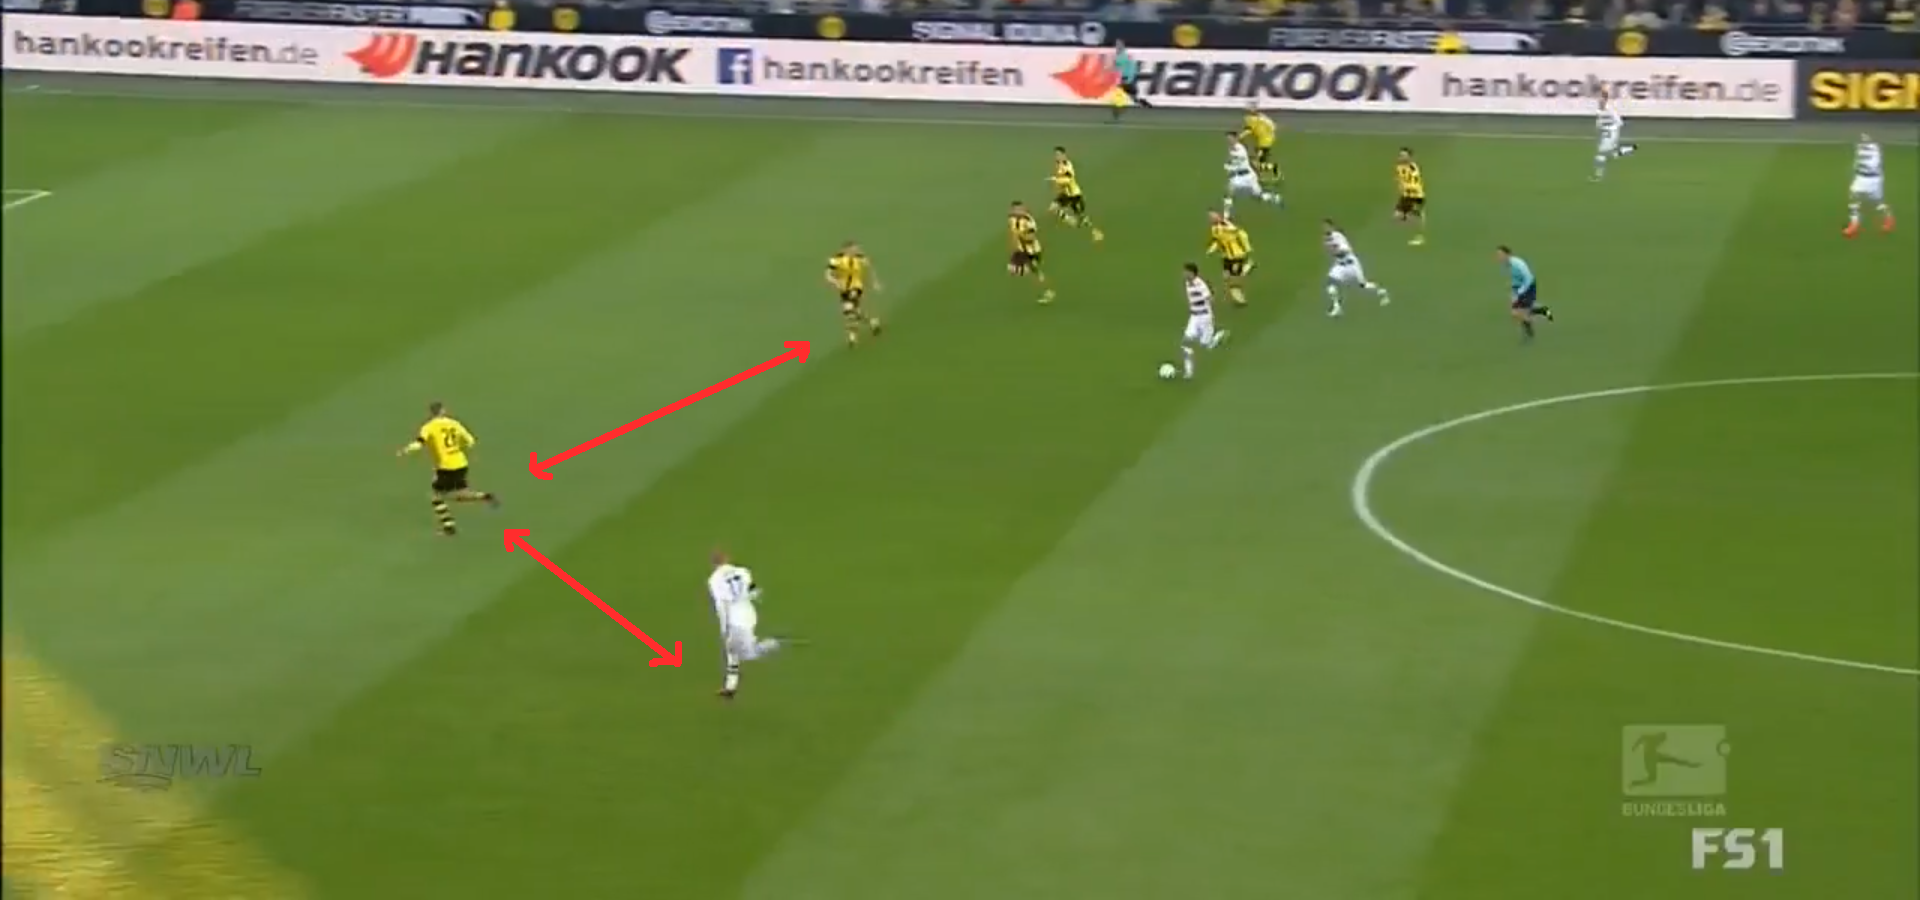 Piszczek is unaware of the threat behind him and leaves too much space between the defensive lines.